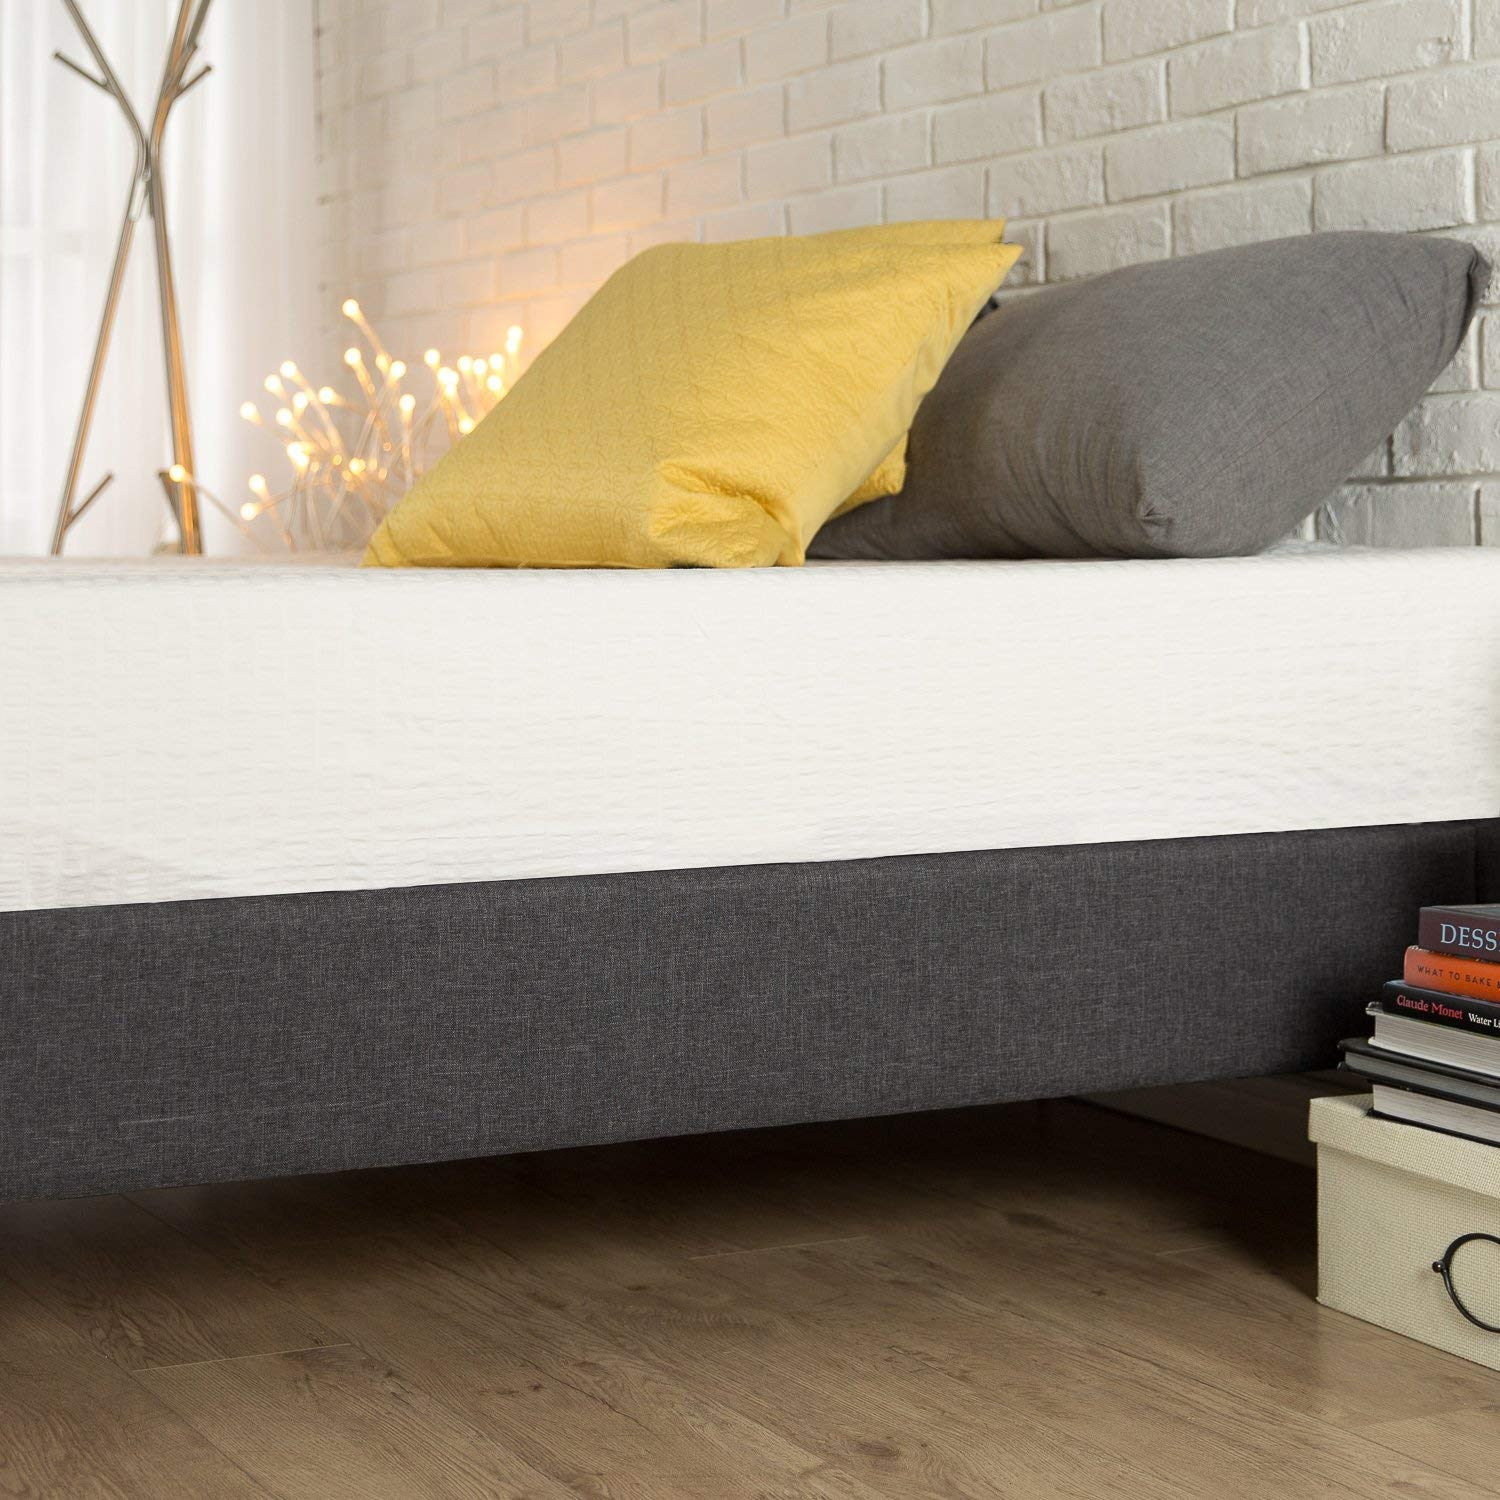 zinus Upholstered platform bed features